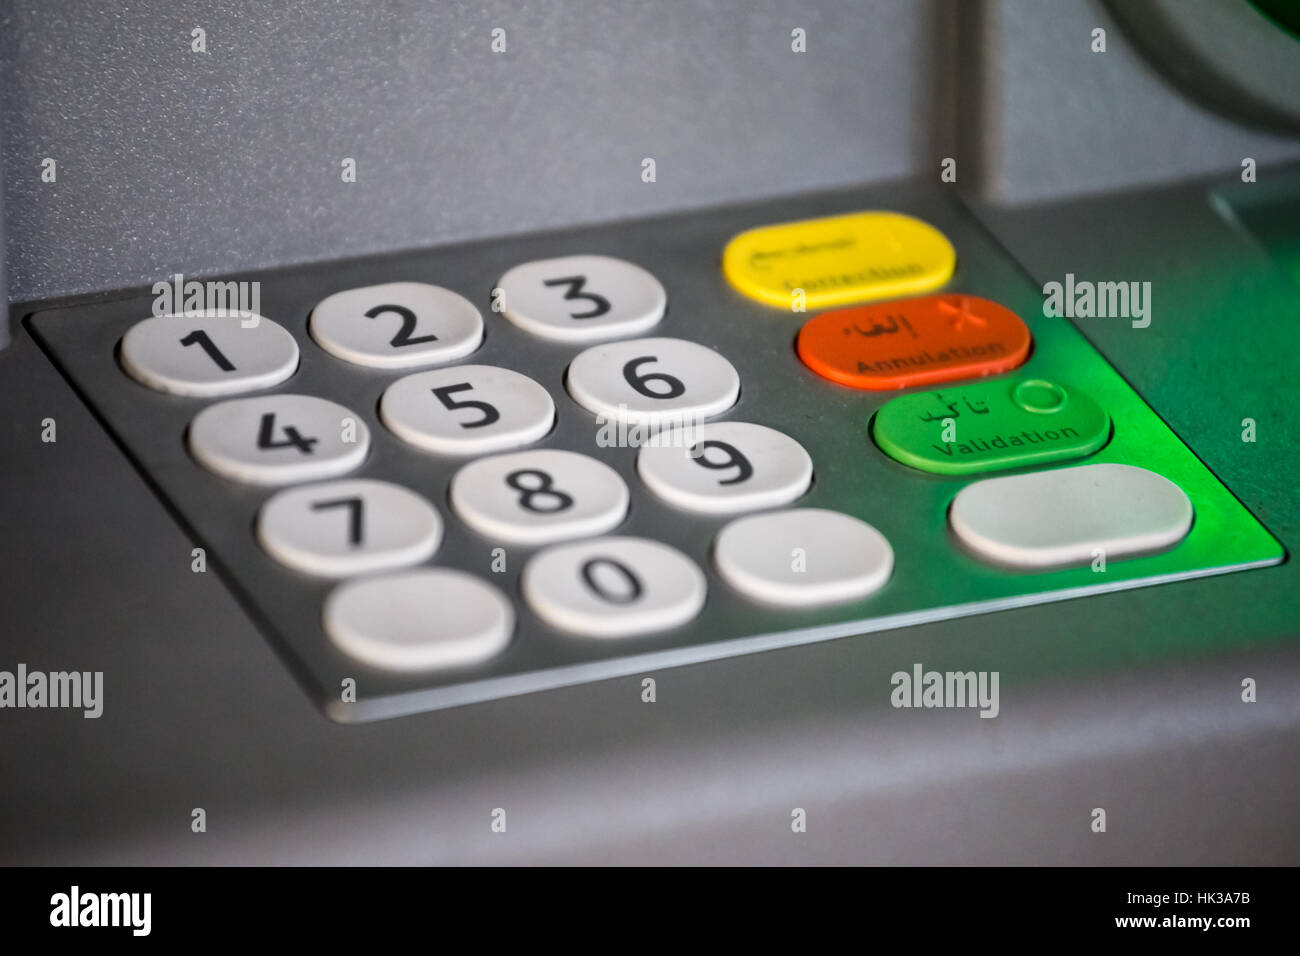 Close-up ATM Keypad in Morocco, guichet bancaire maroc - Stock Image